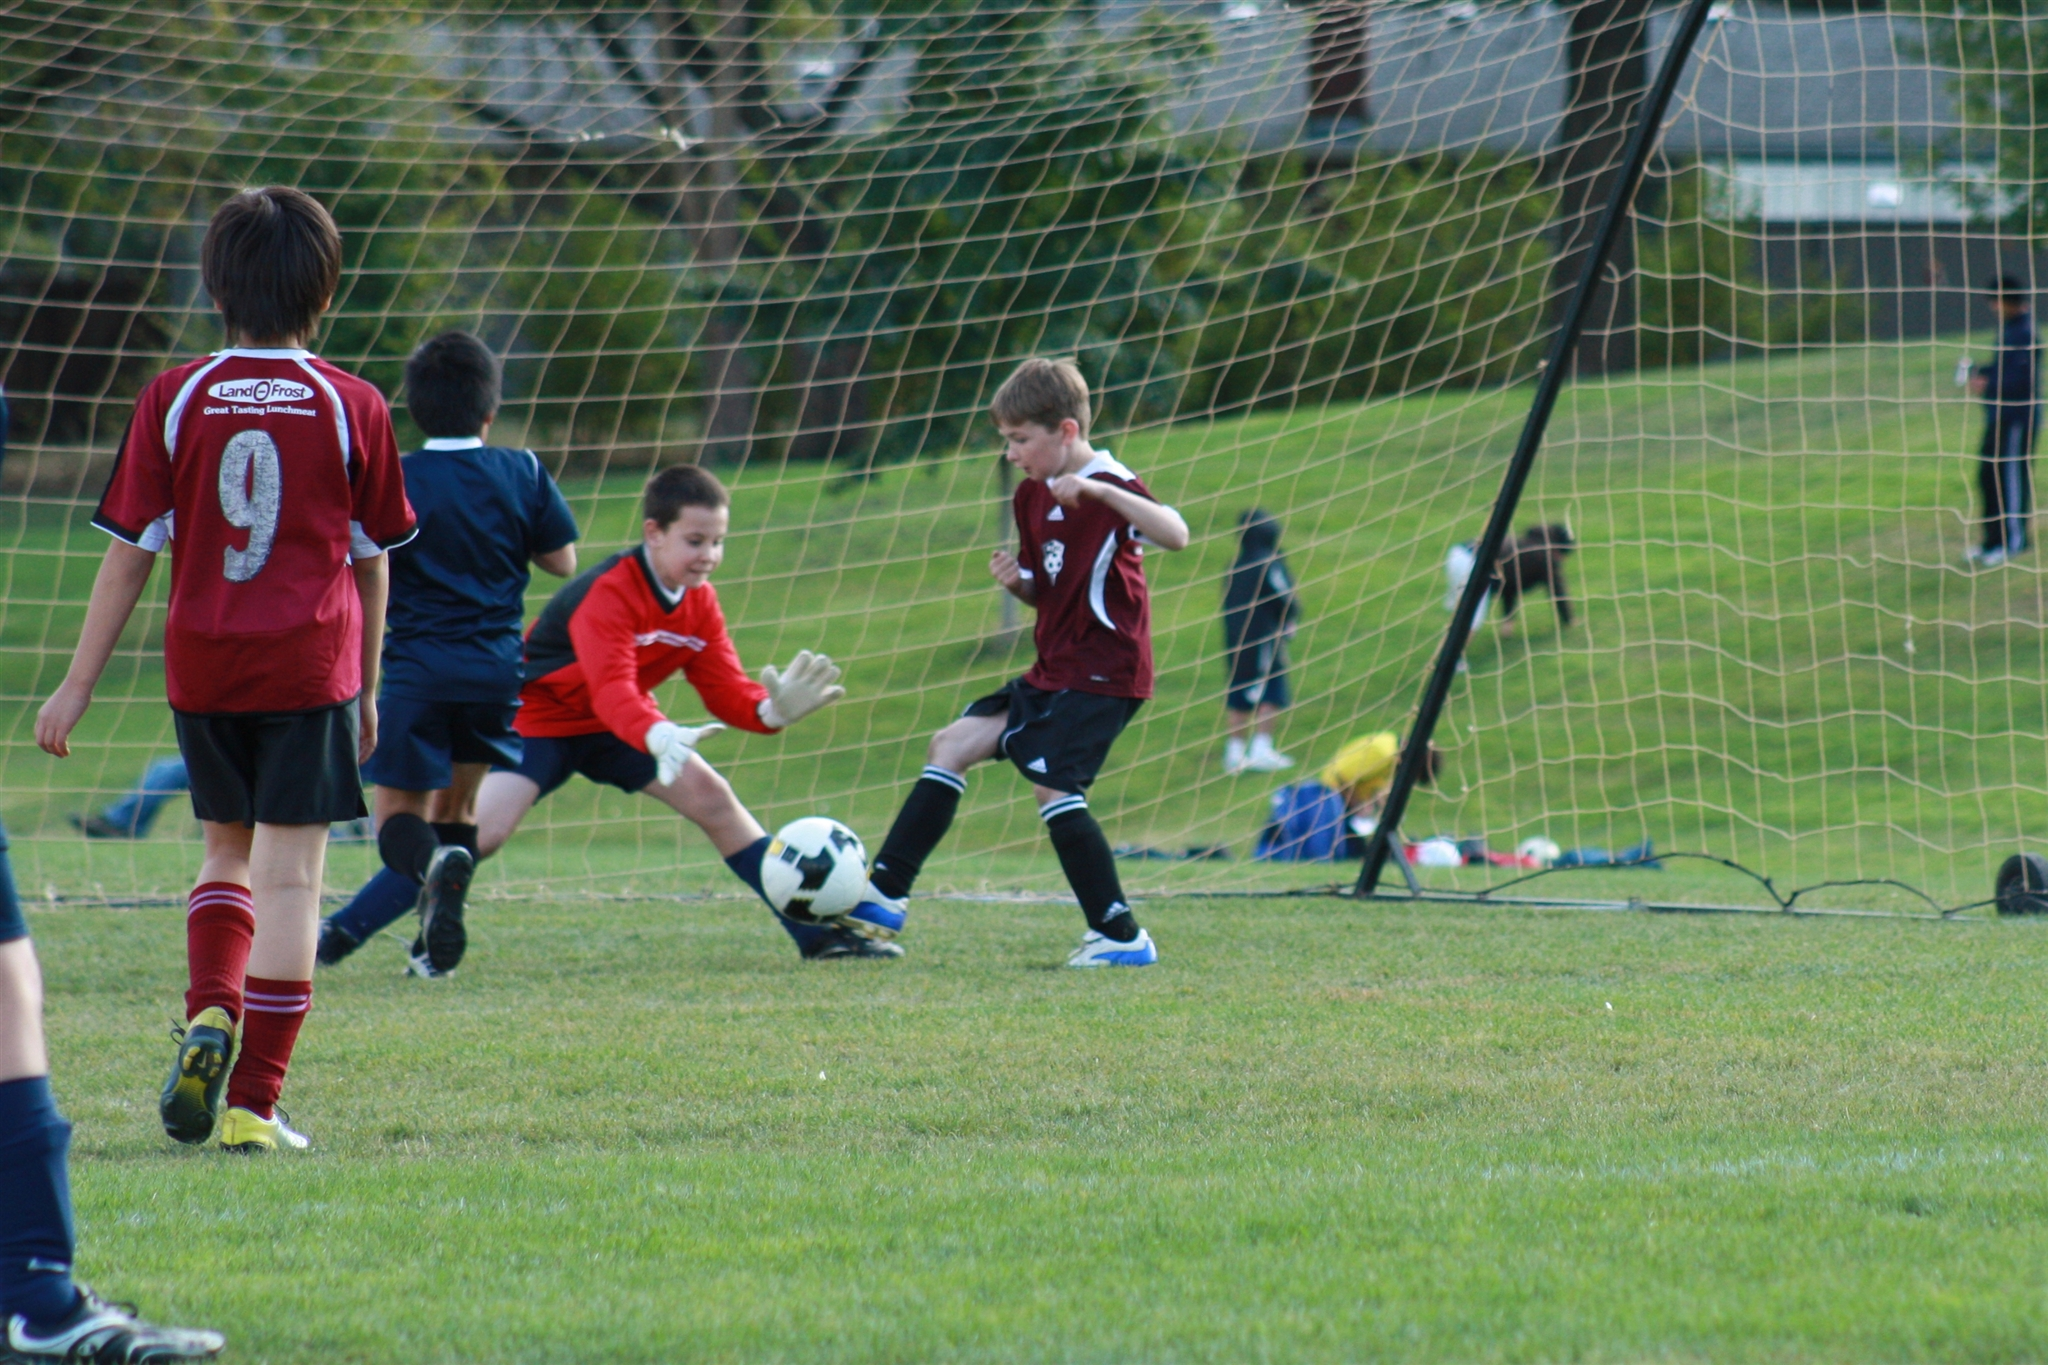 Trevor's 1st goal in the Tournament...too fast for the goalie to snap itup!